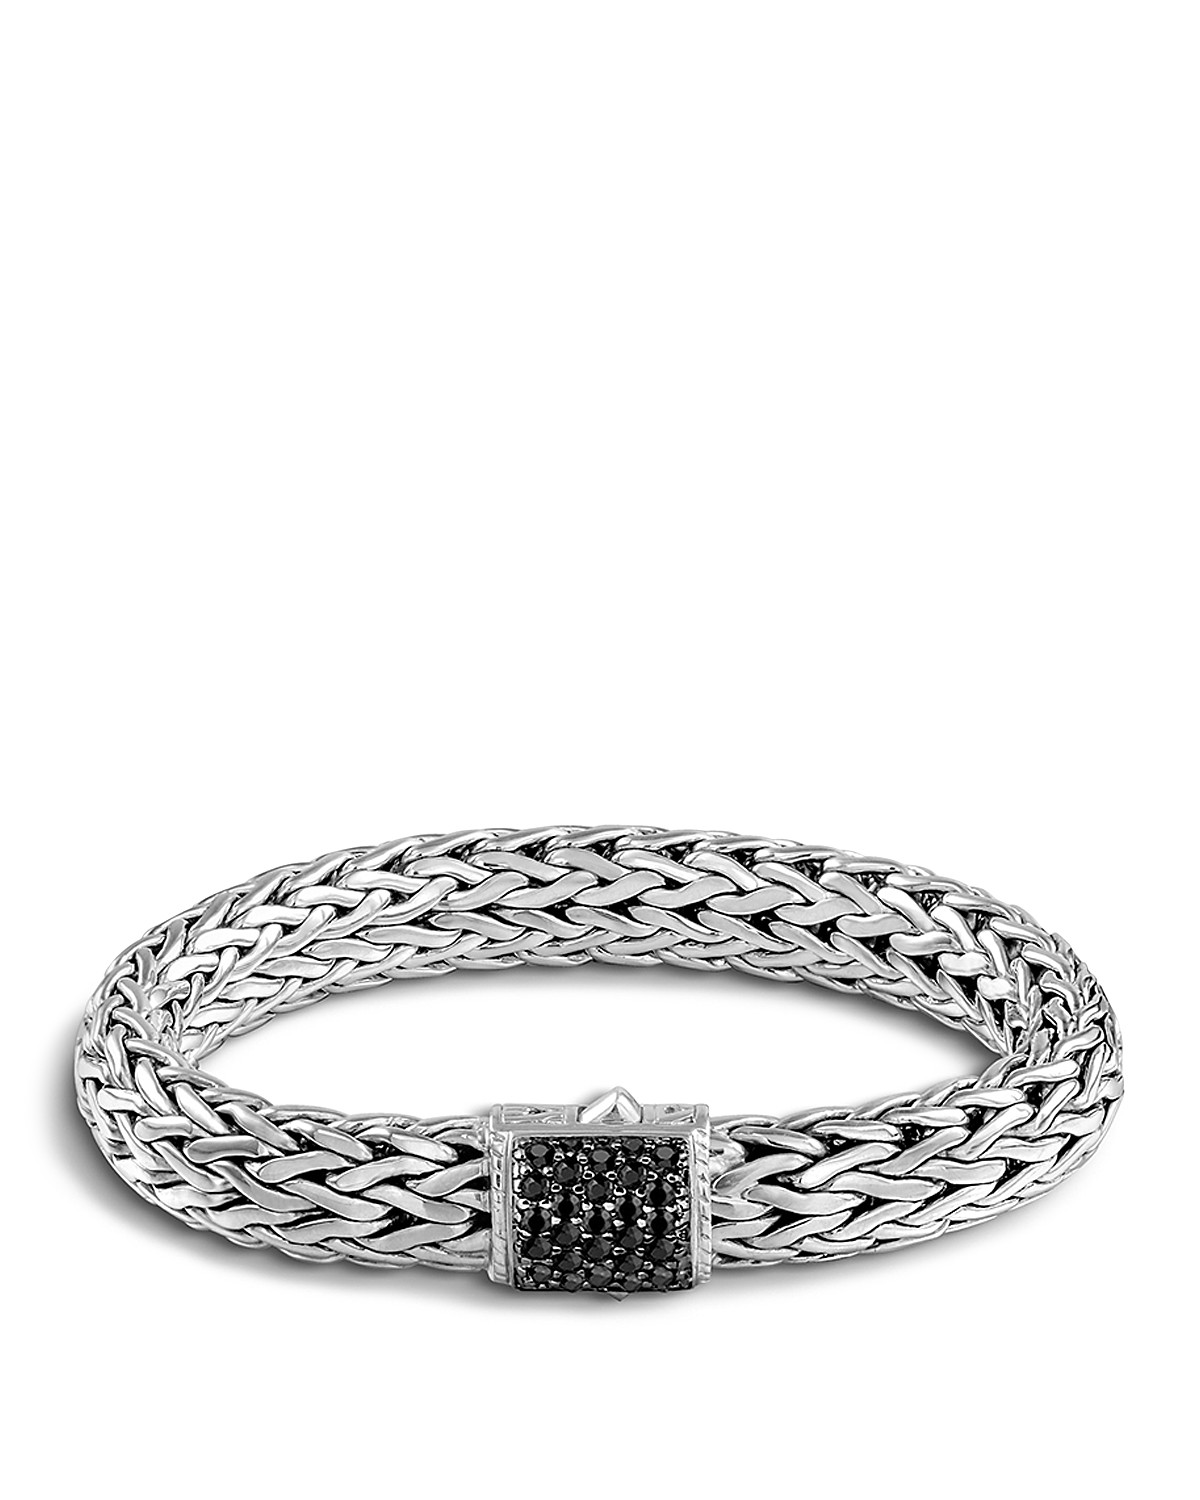 bracelet silver sterling bracelets herringbone wide heavy bangle large bangles mens